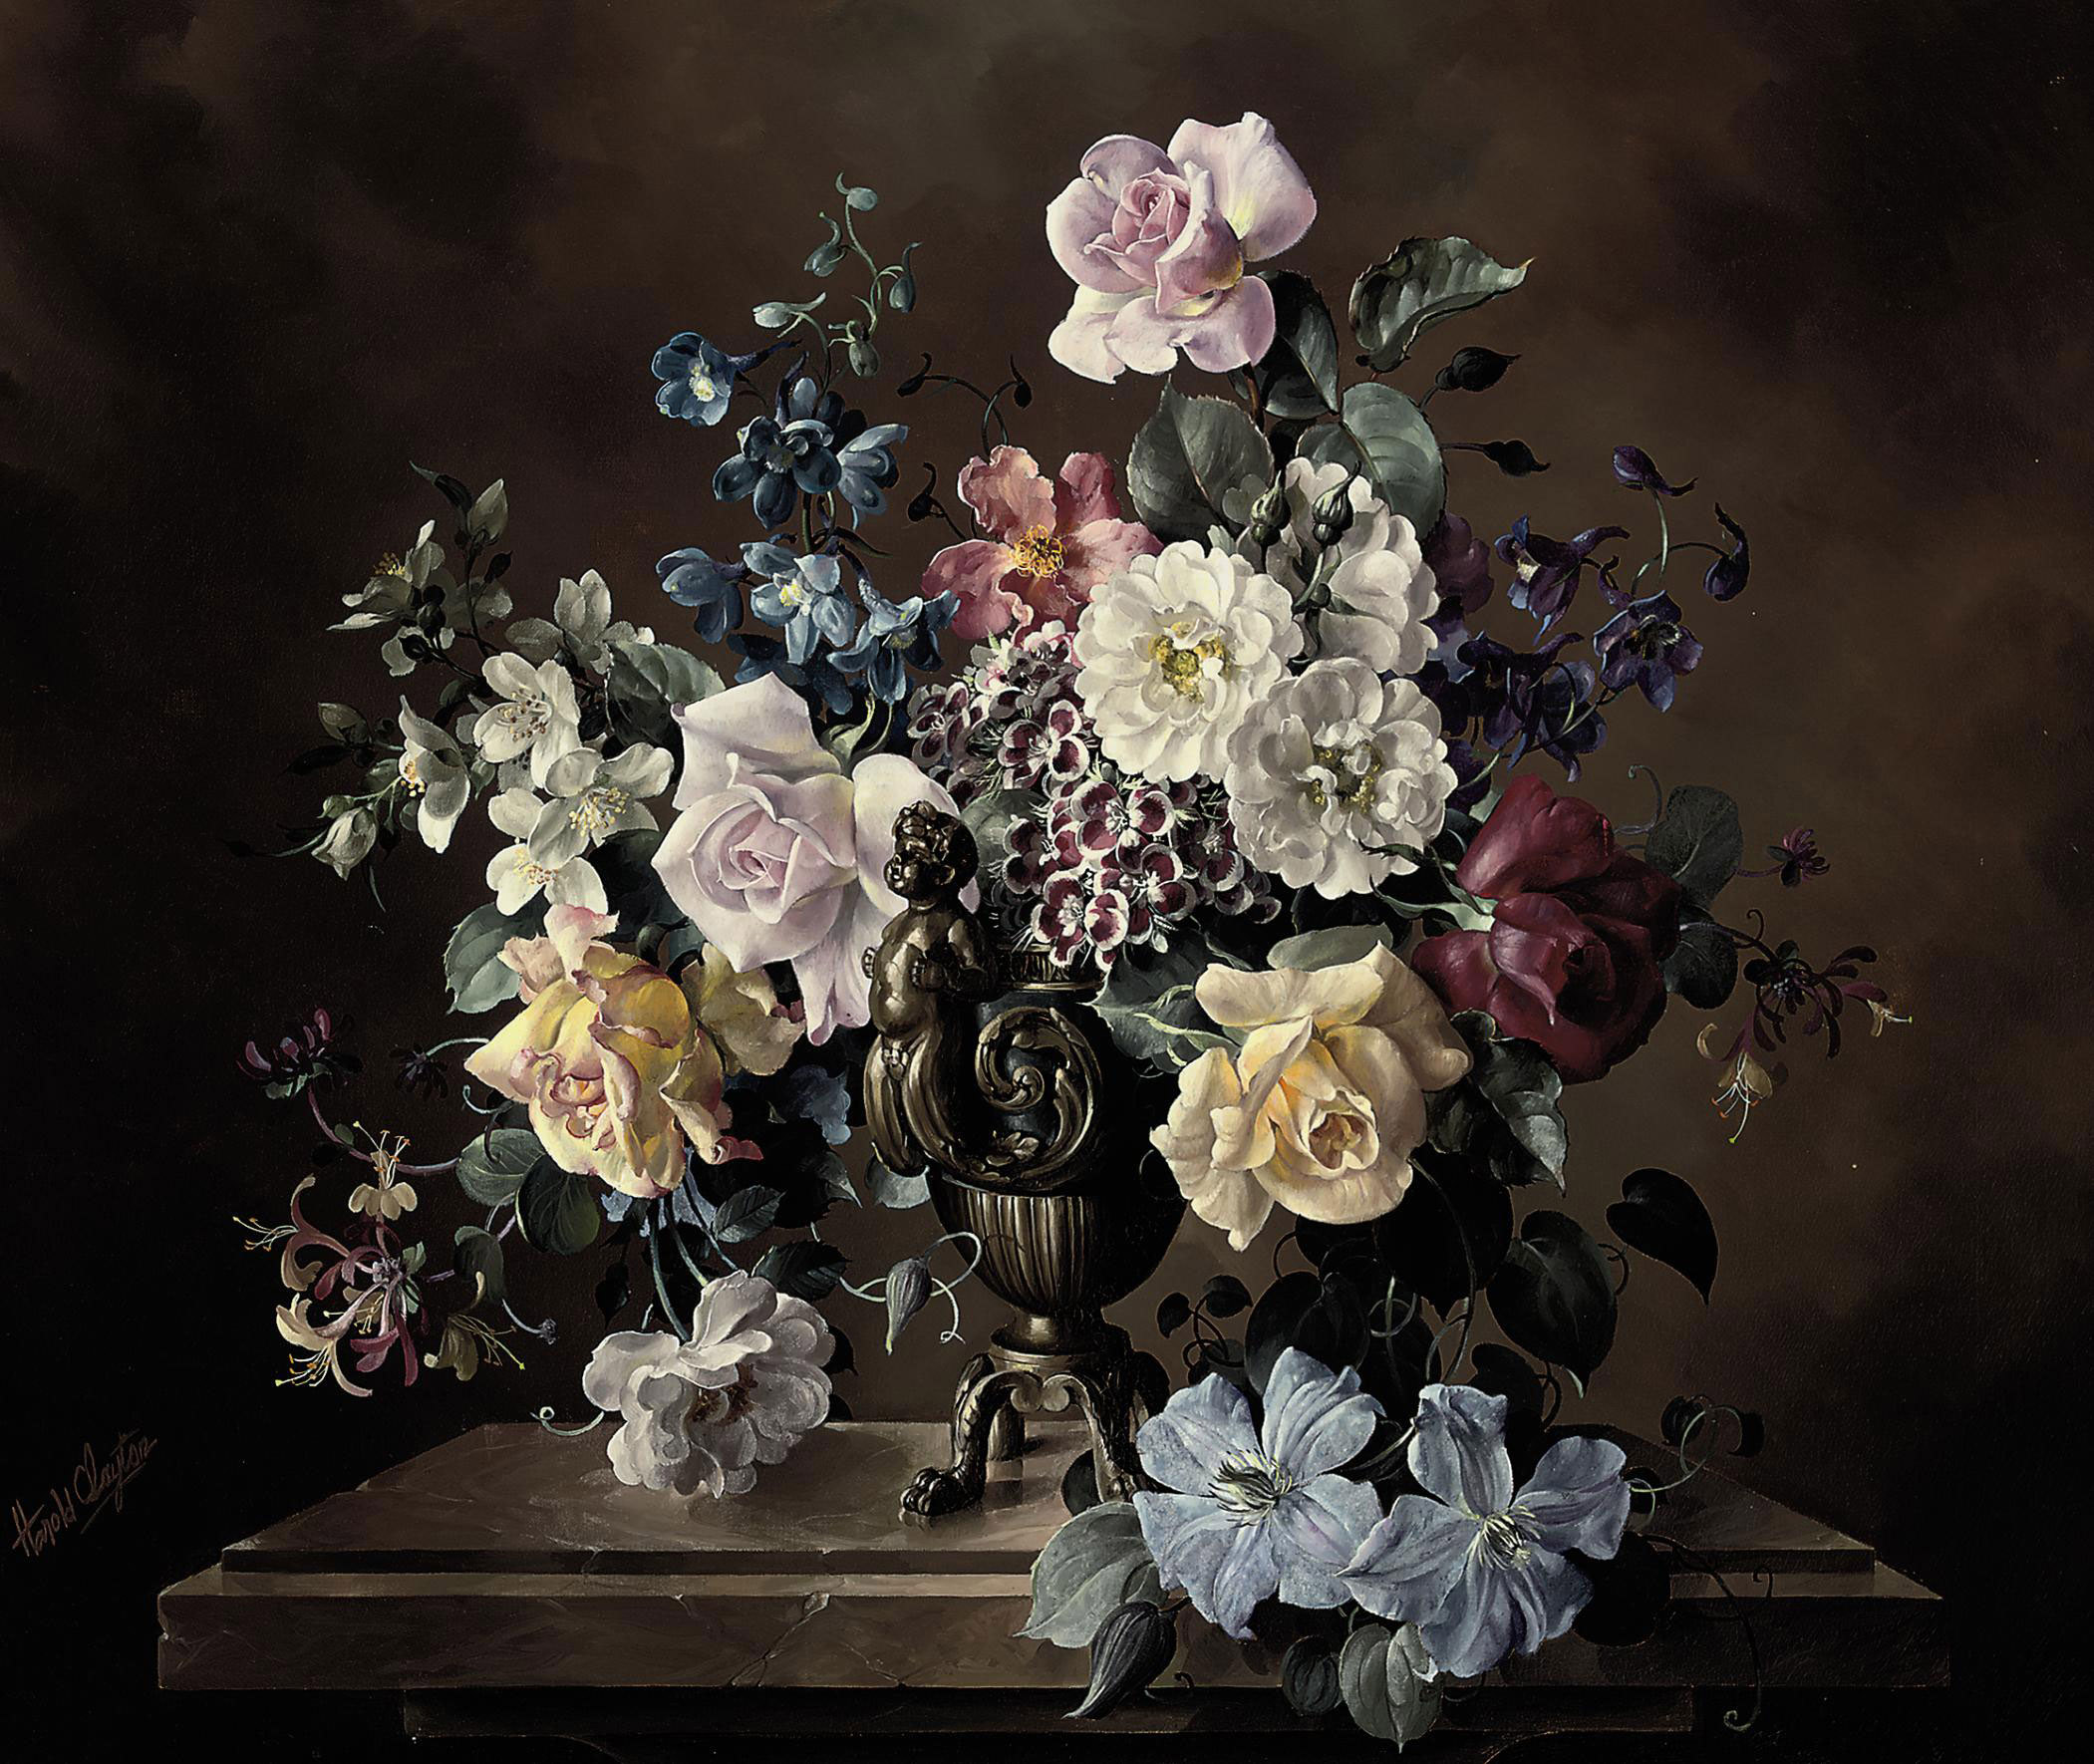 Roses, honeysuckle, delphiniums, clematis and other flowers in a bronze urn with putti on a marble pedestal